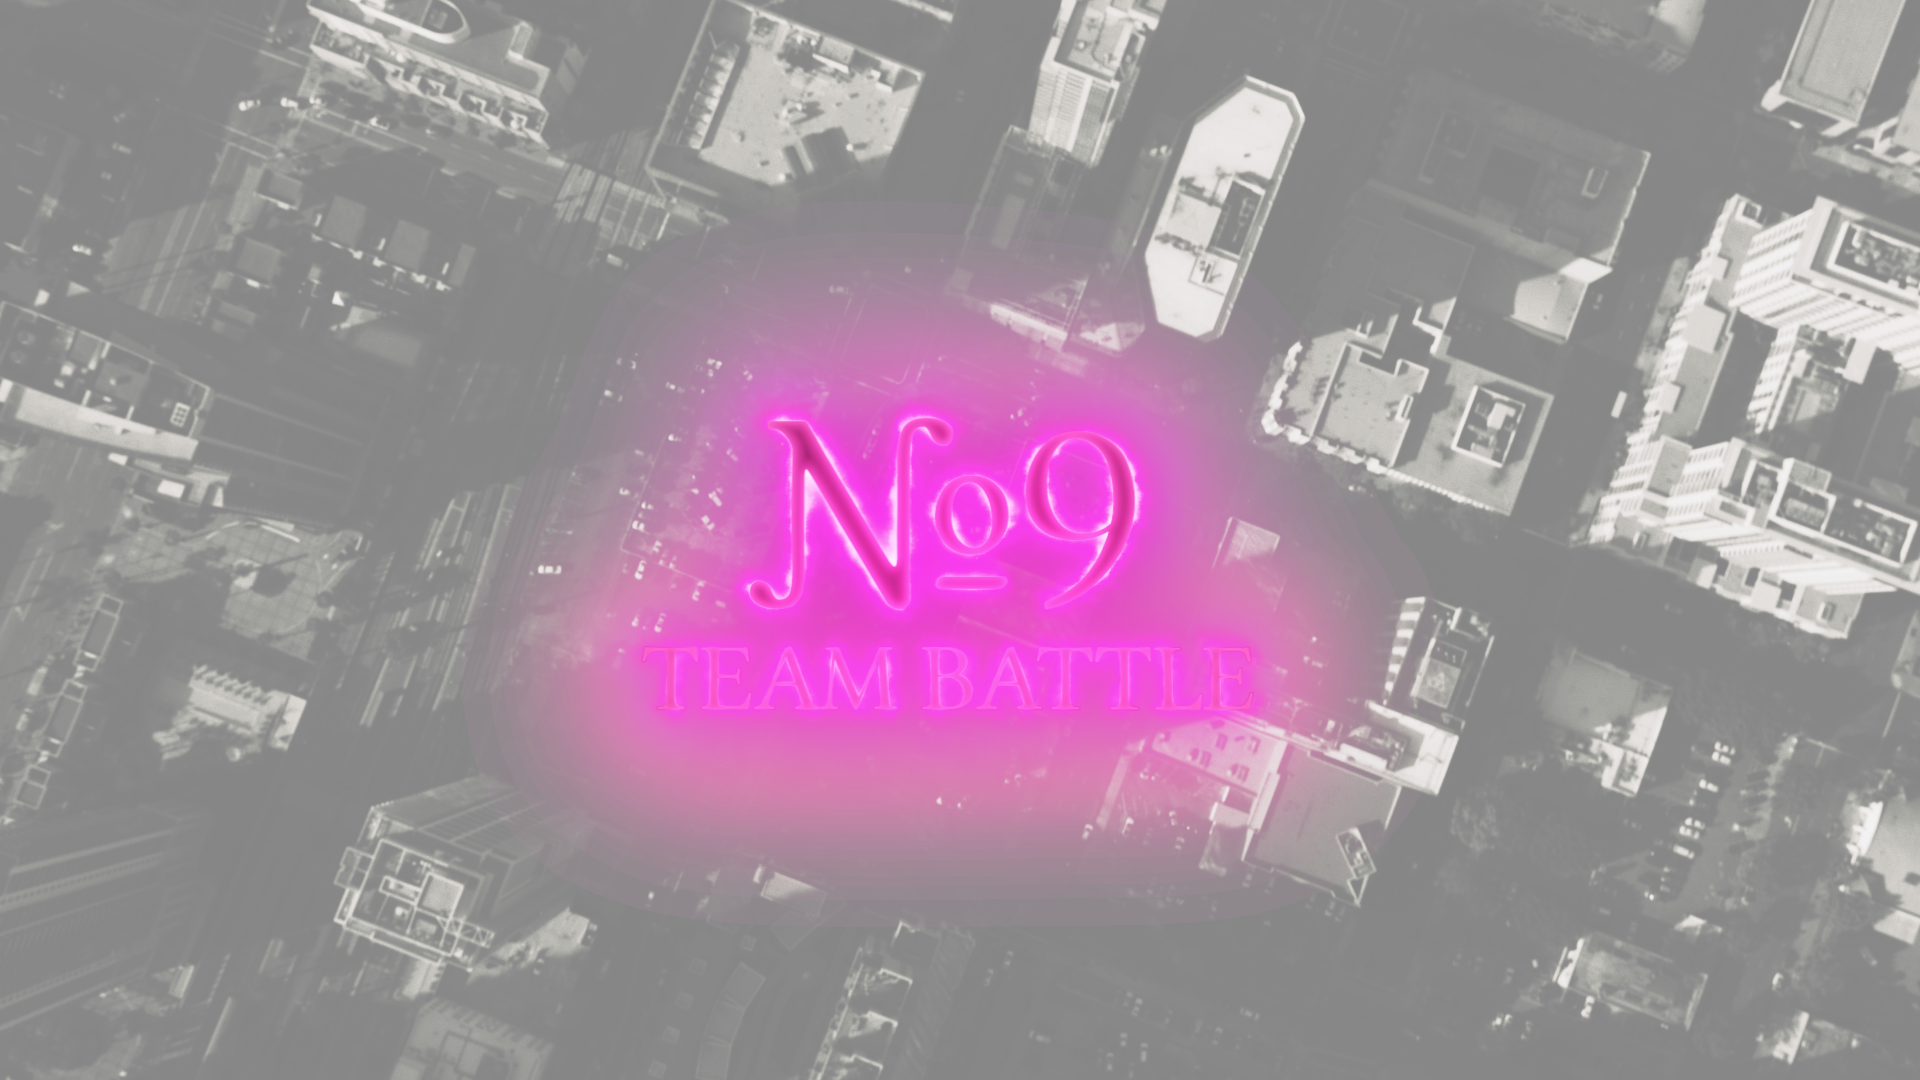 №9 TEAM BATTLE